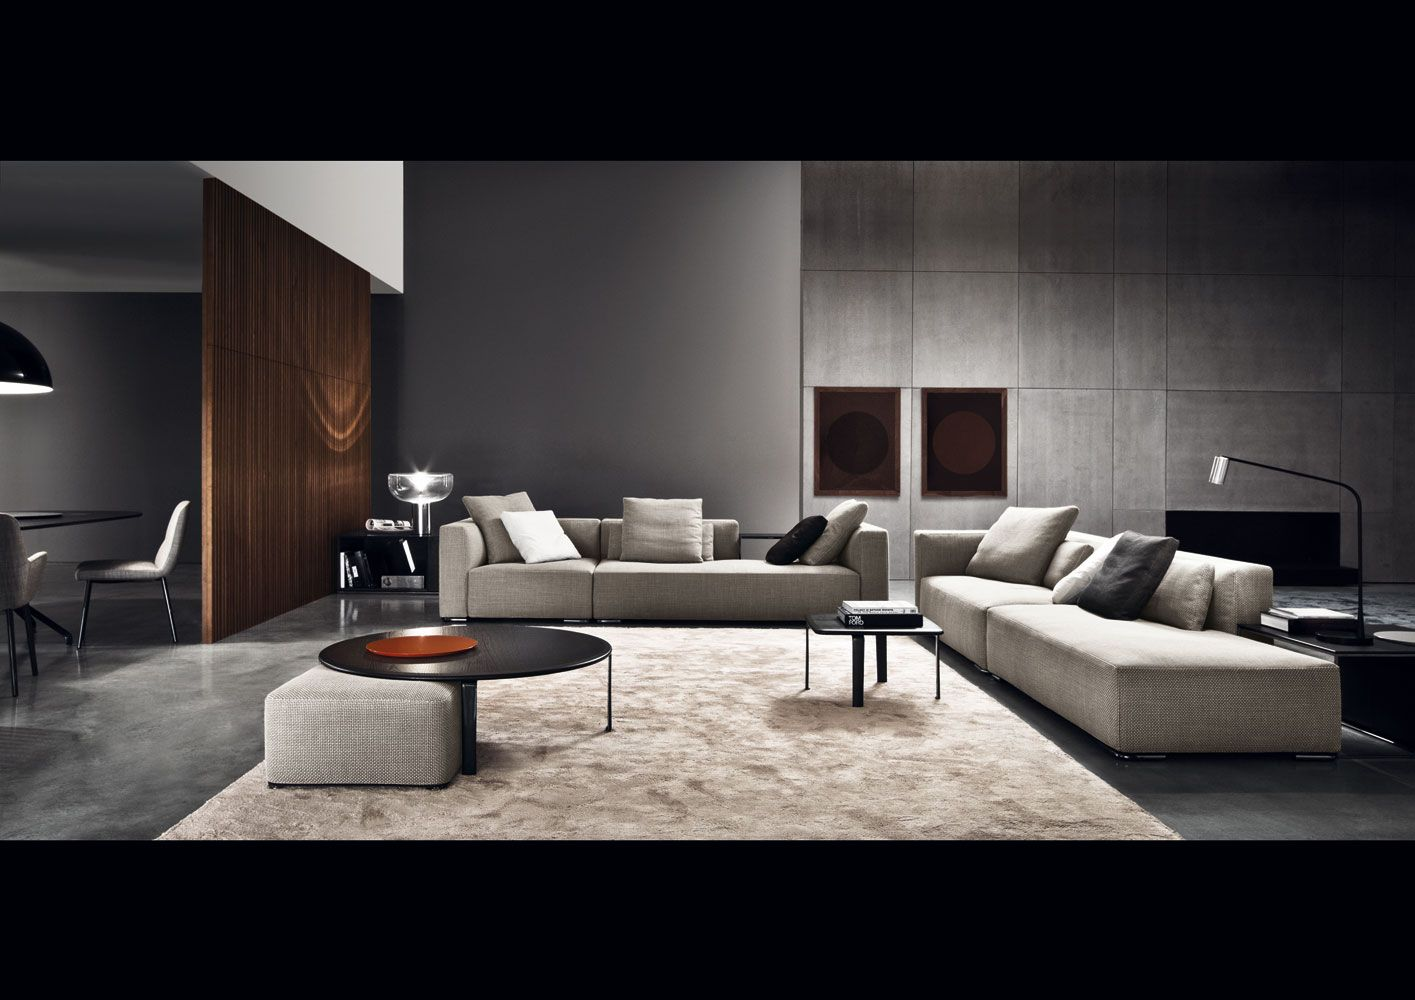 minotti sofas australia green leather chesterfield sofa bed smink incorporated products  interior and